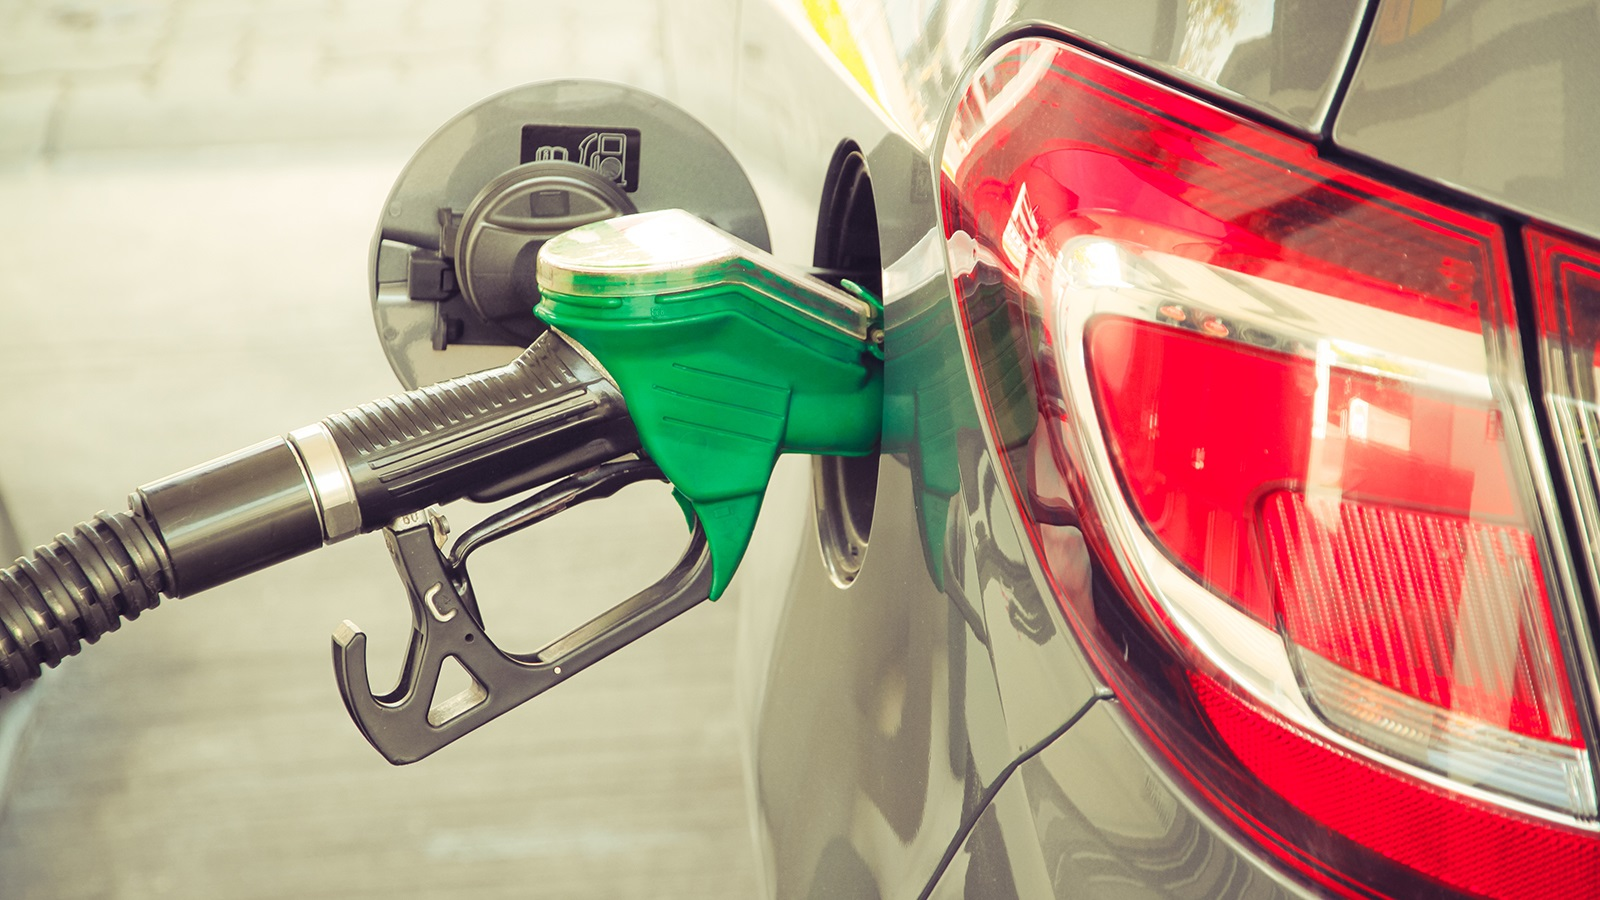 Using more biofuels and engines that handle them could potentially cut emissions and water use within three decades, according to a new Argonne-led study. (Image by Shutterstock / fewerton.)